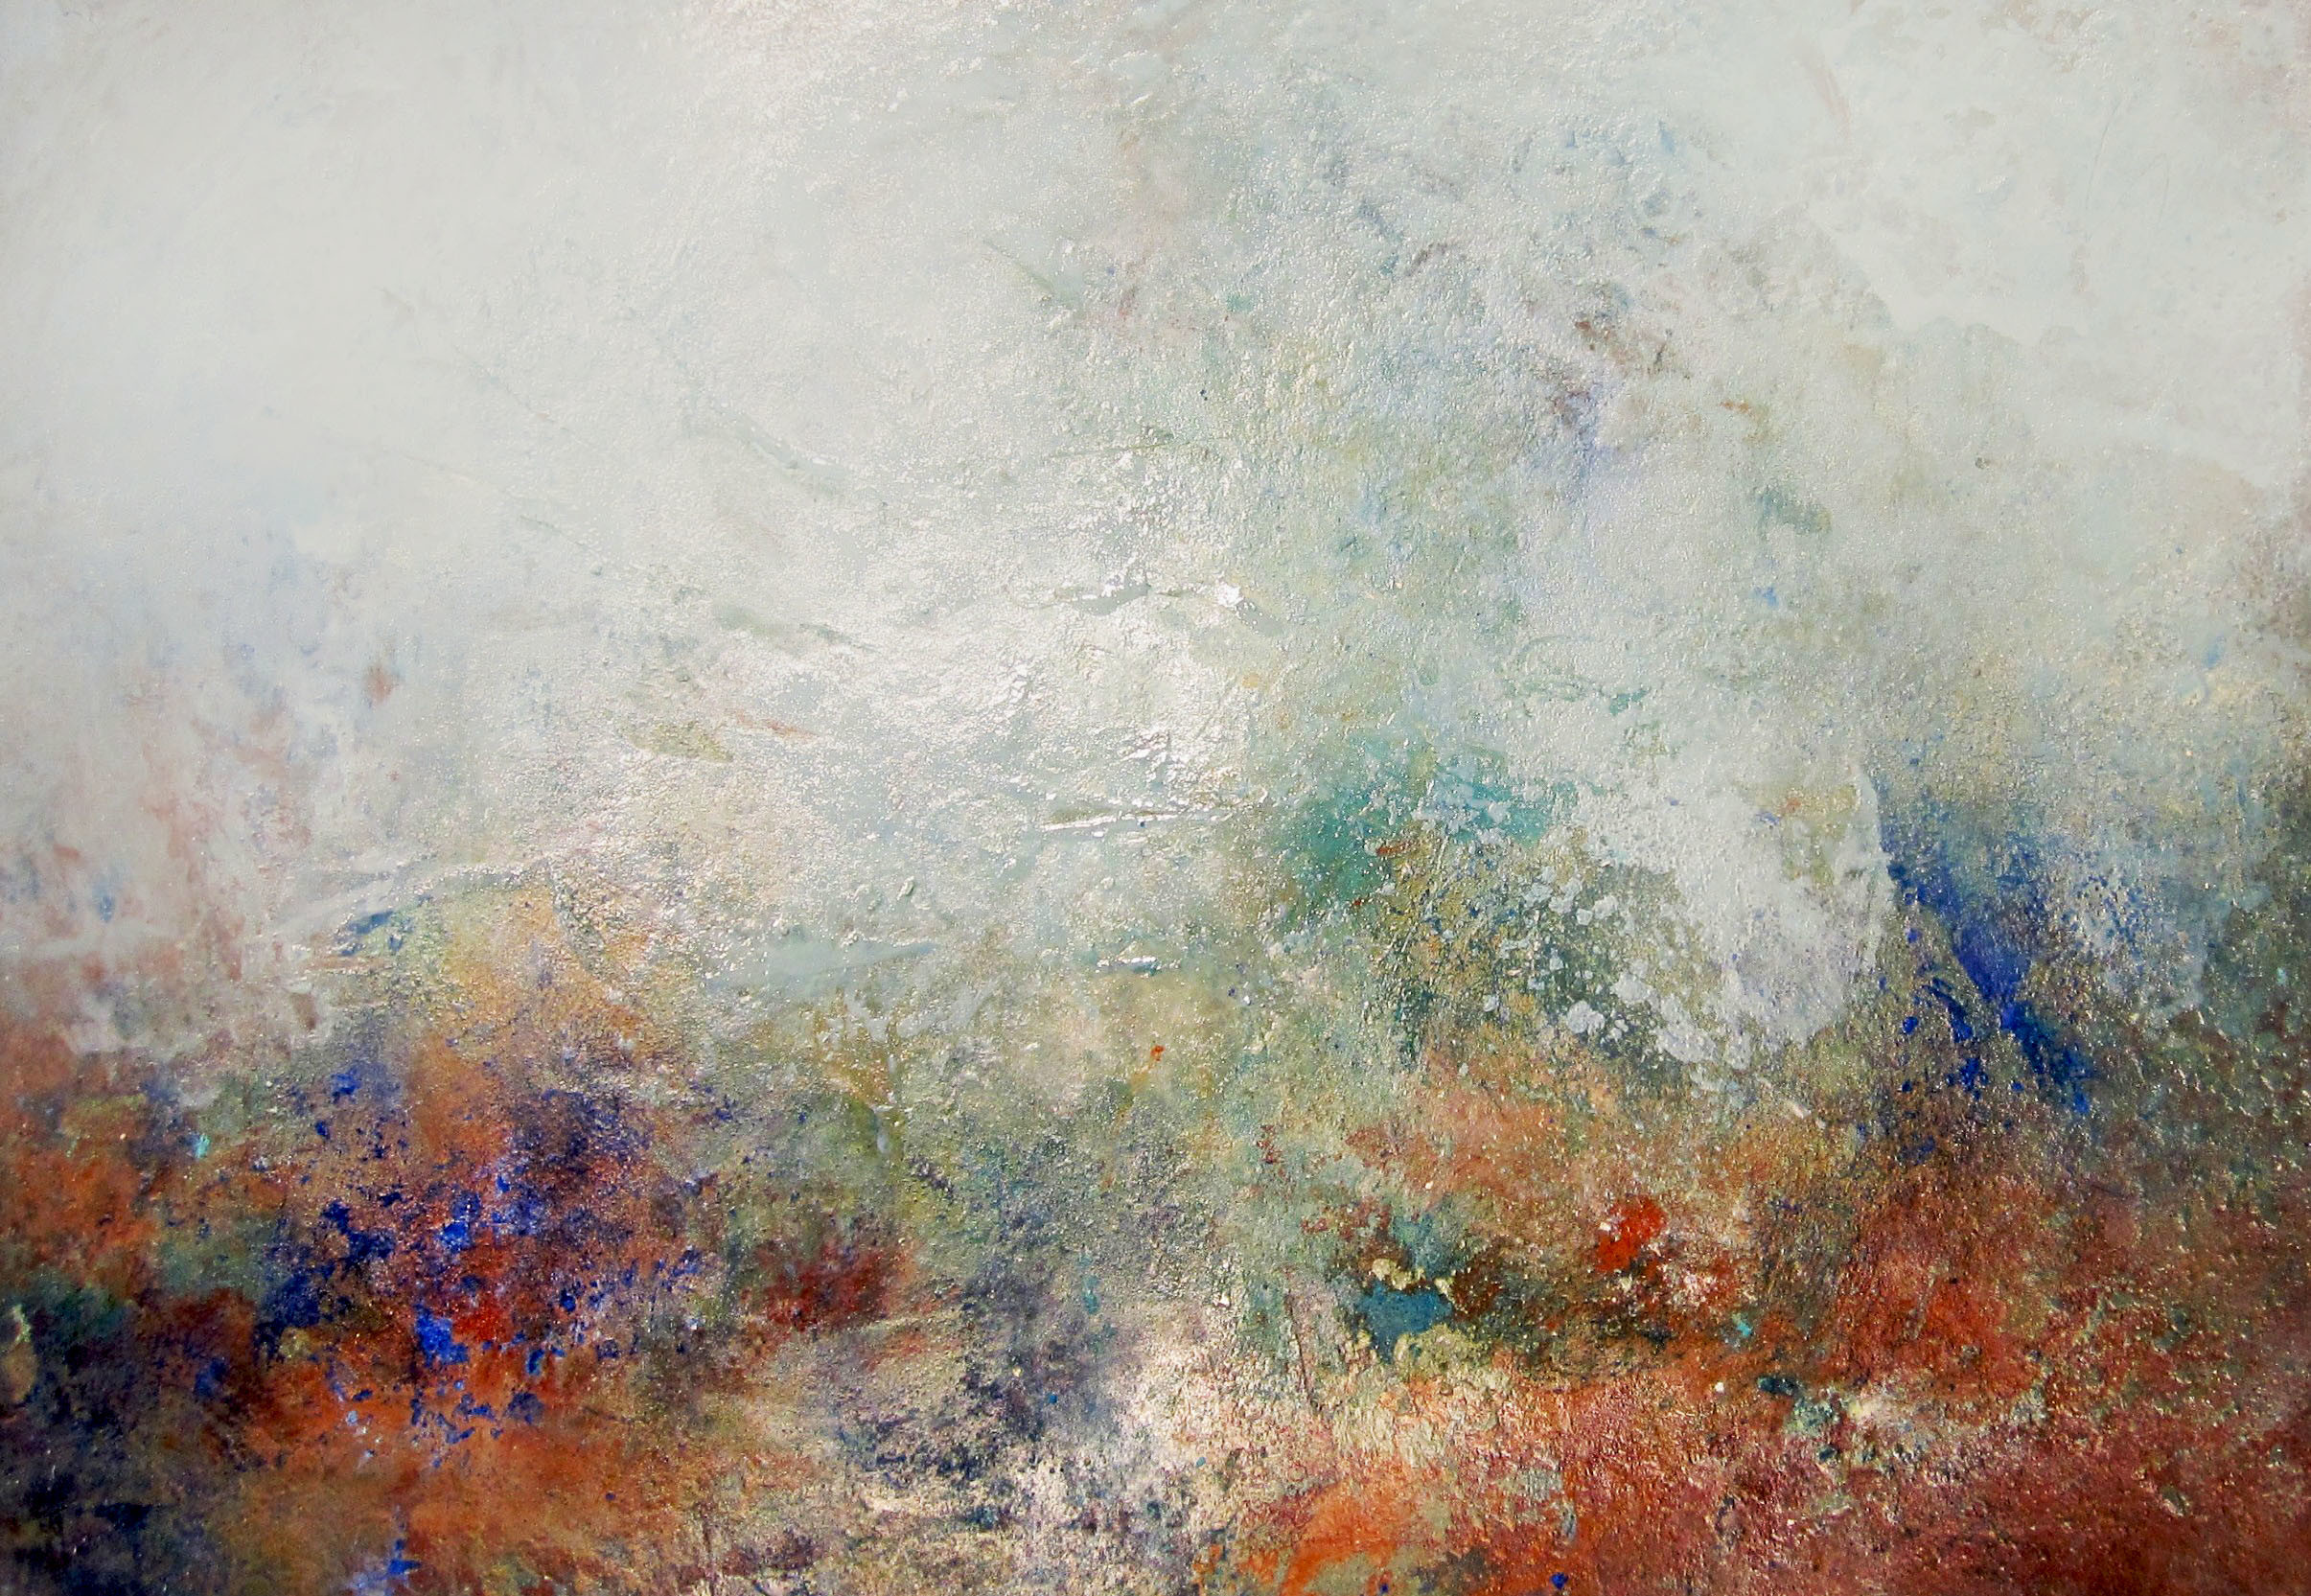 2411x1665, Backgrounds For Wall Art Painting Wallpaper - Abstract Painting Art Wallpaper Hd - HD Wallpaper